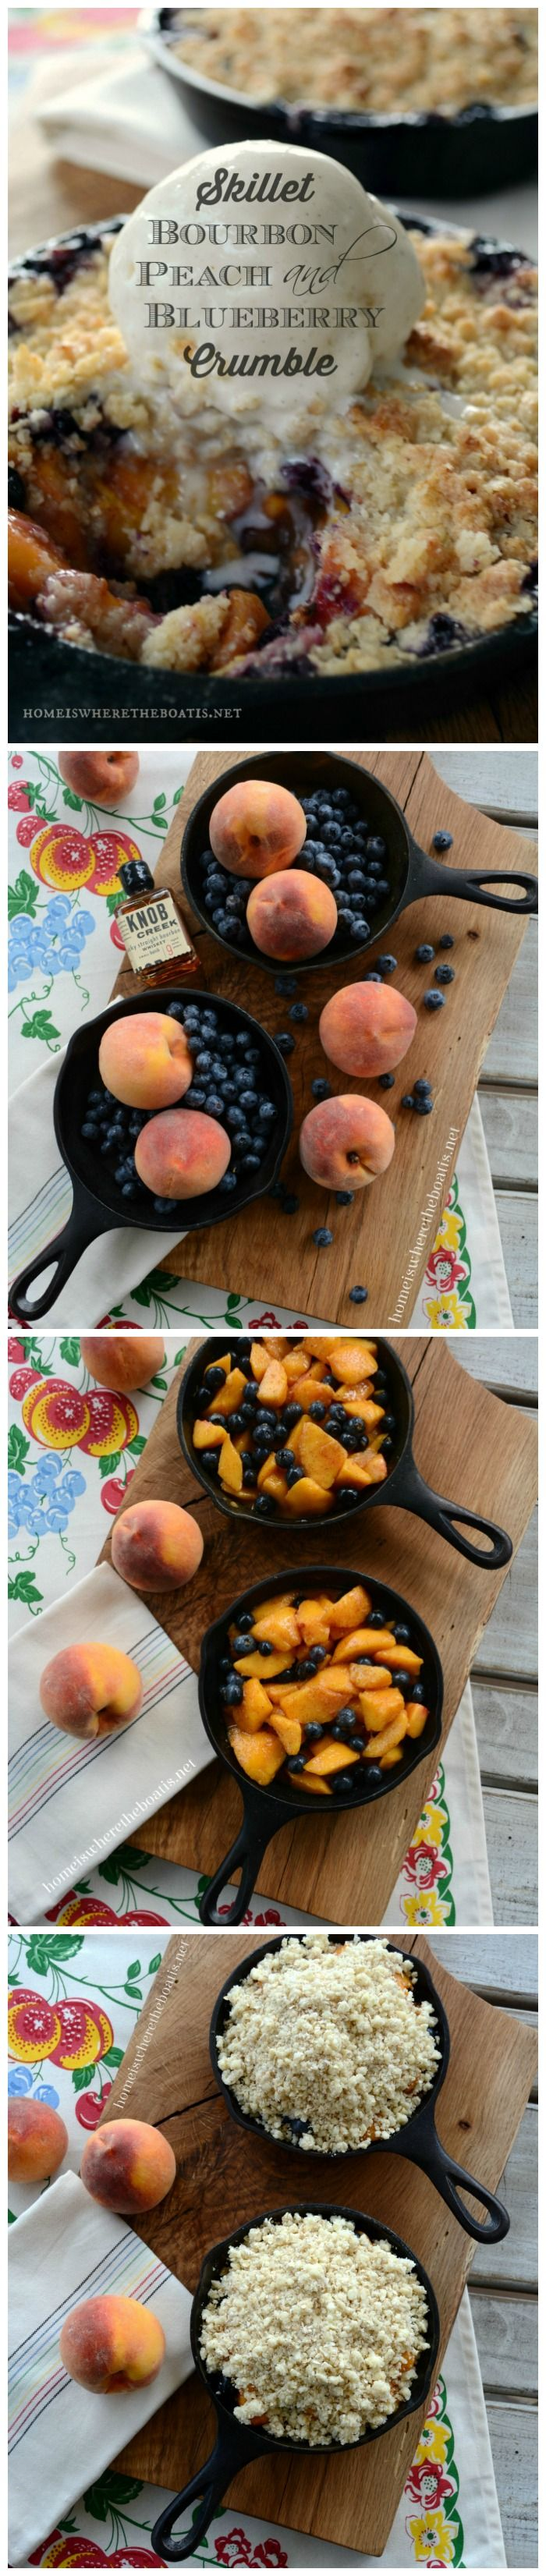 Skillet Bourbon, Peach and Blueberry Crumble! #dessert #summer